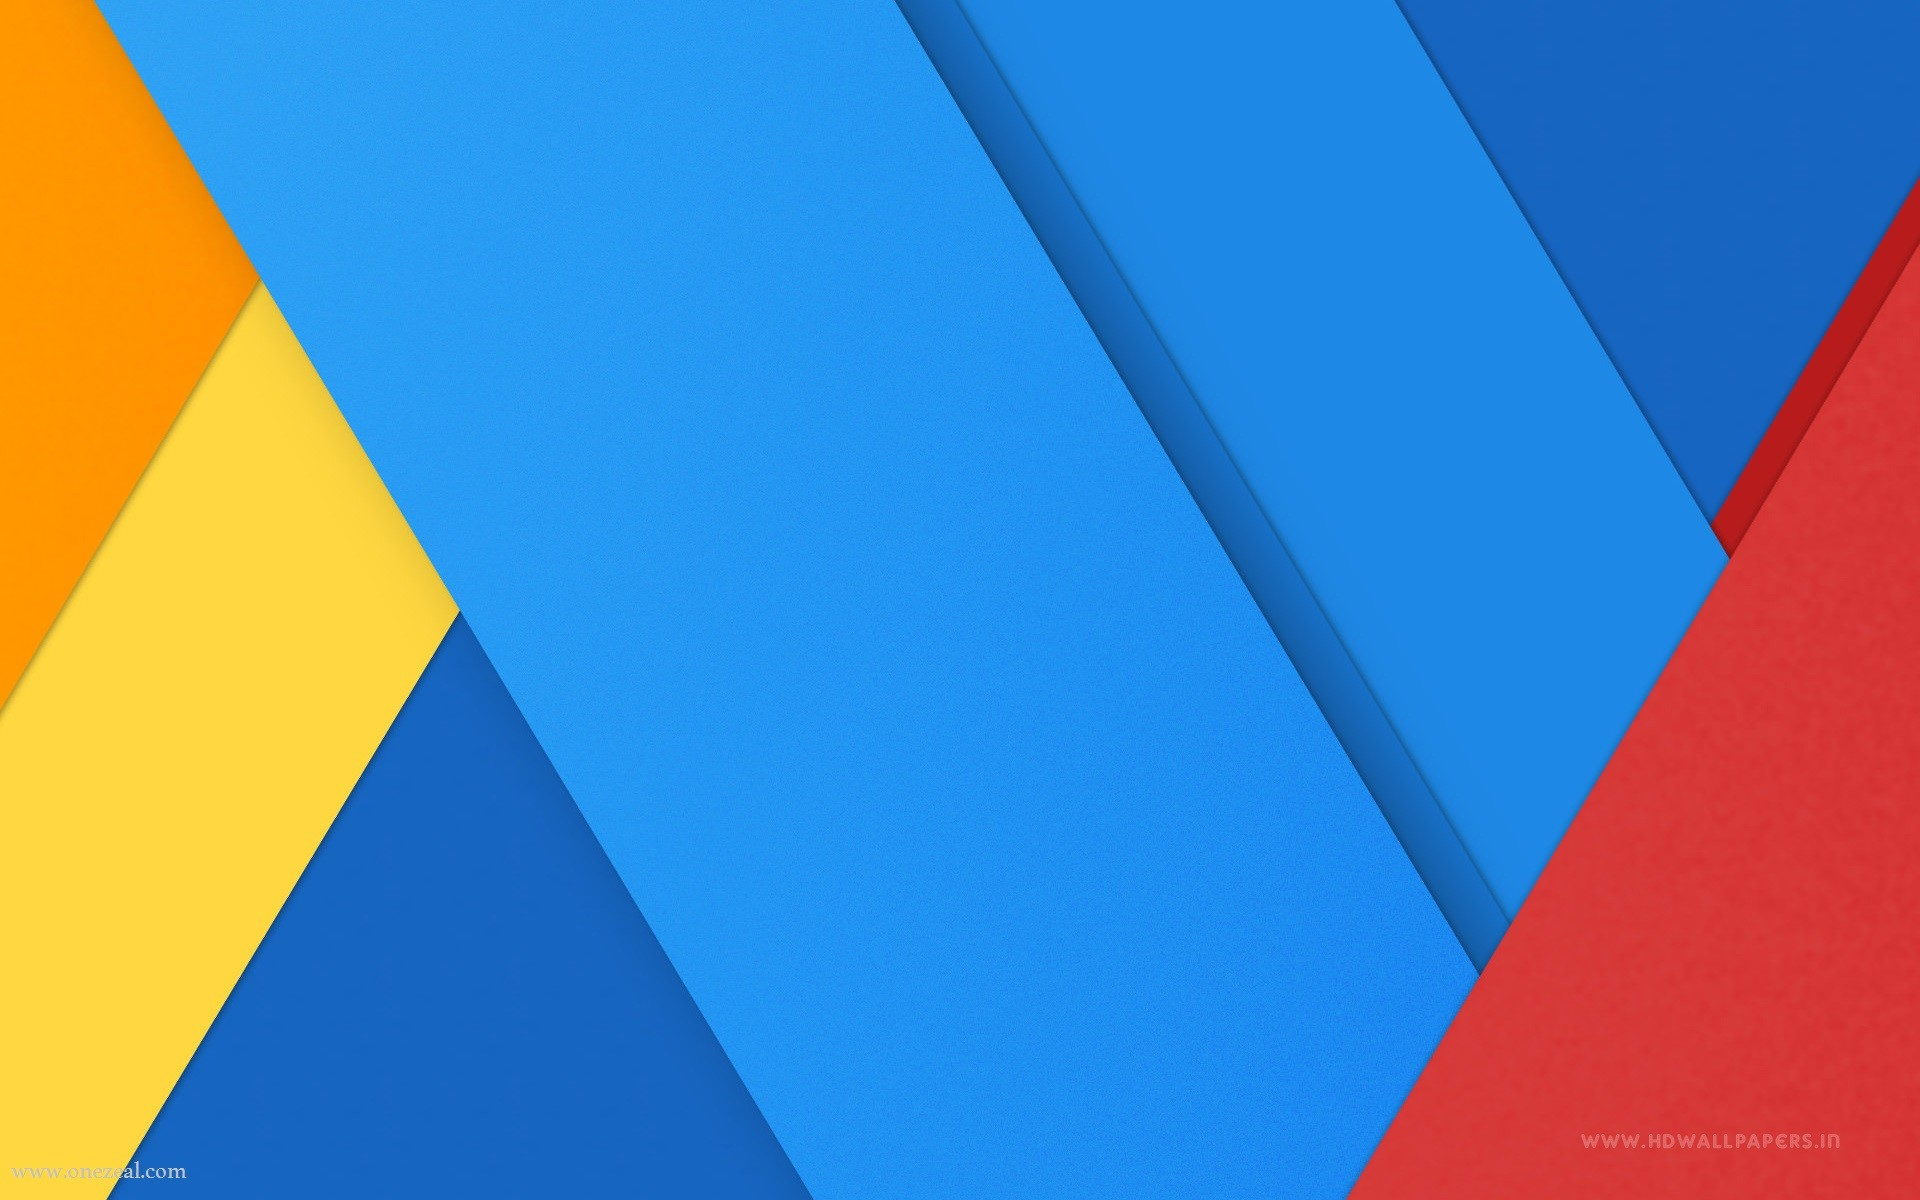 HD Cyanogenmod version of Android Wallpapers for your Desktop Mobiles  Tablets in high quality HD Widescreen